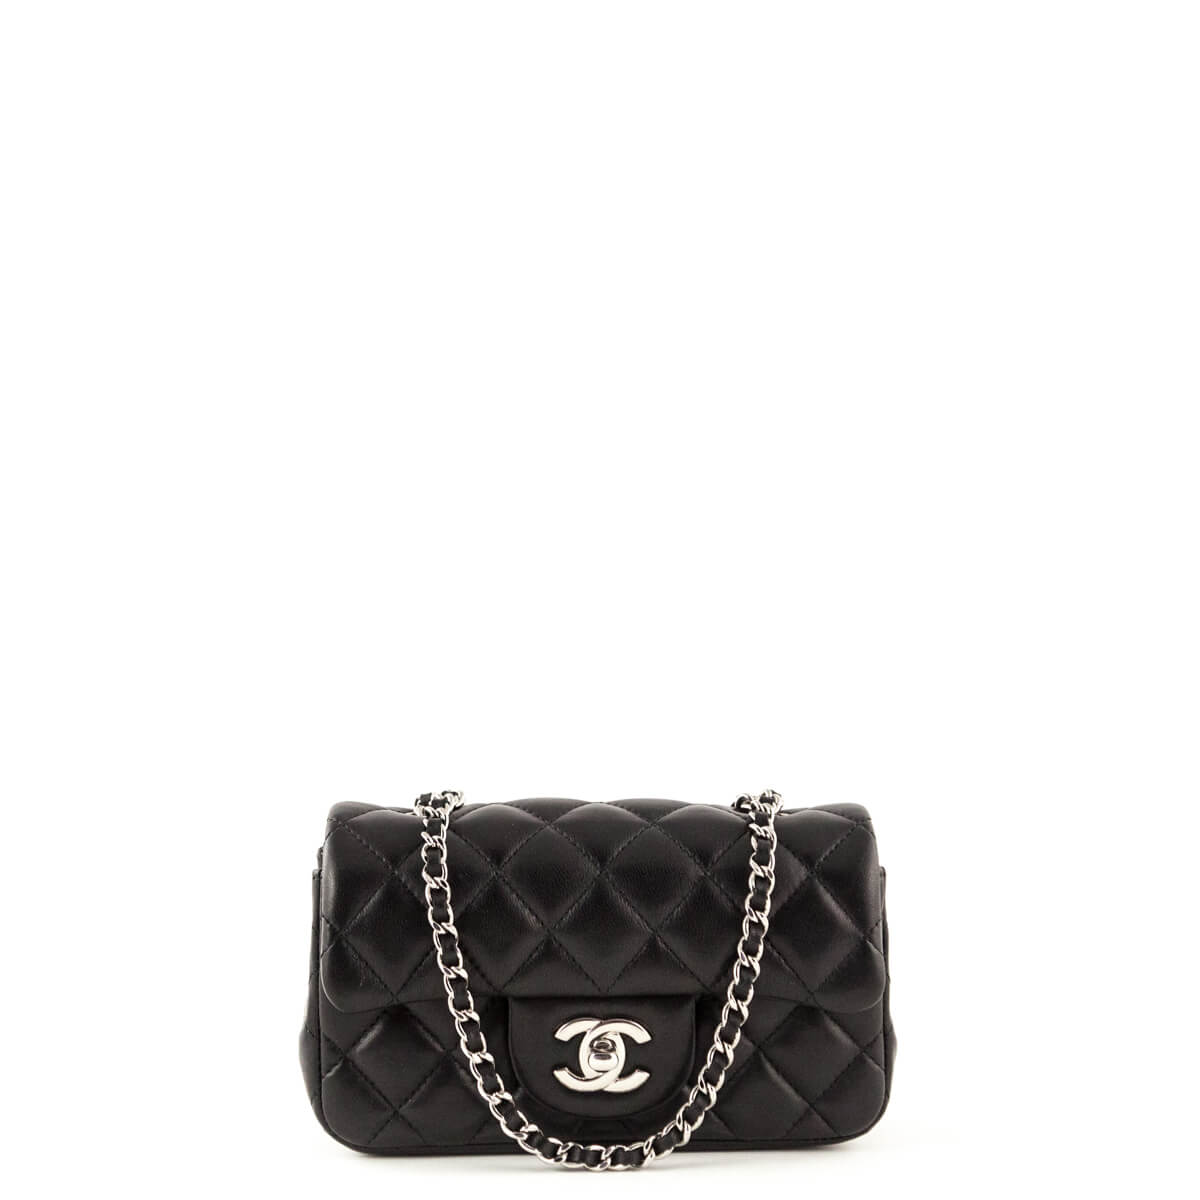 f034486431b5dc Chanel Black Lambskin Classic Extra Mini Flap Bag SHW - LOVE that BAG -  Preowned Authentic ...